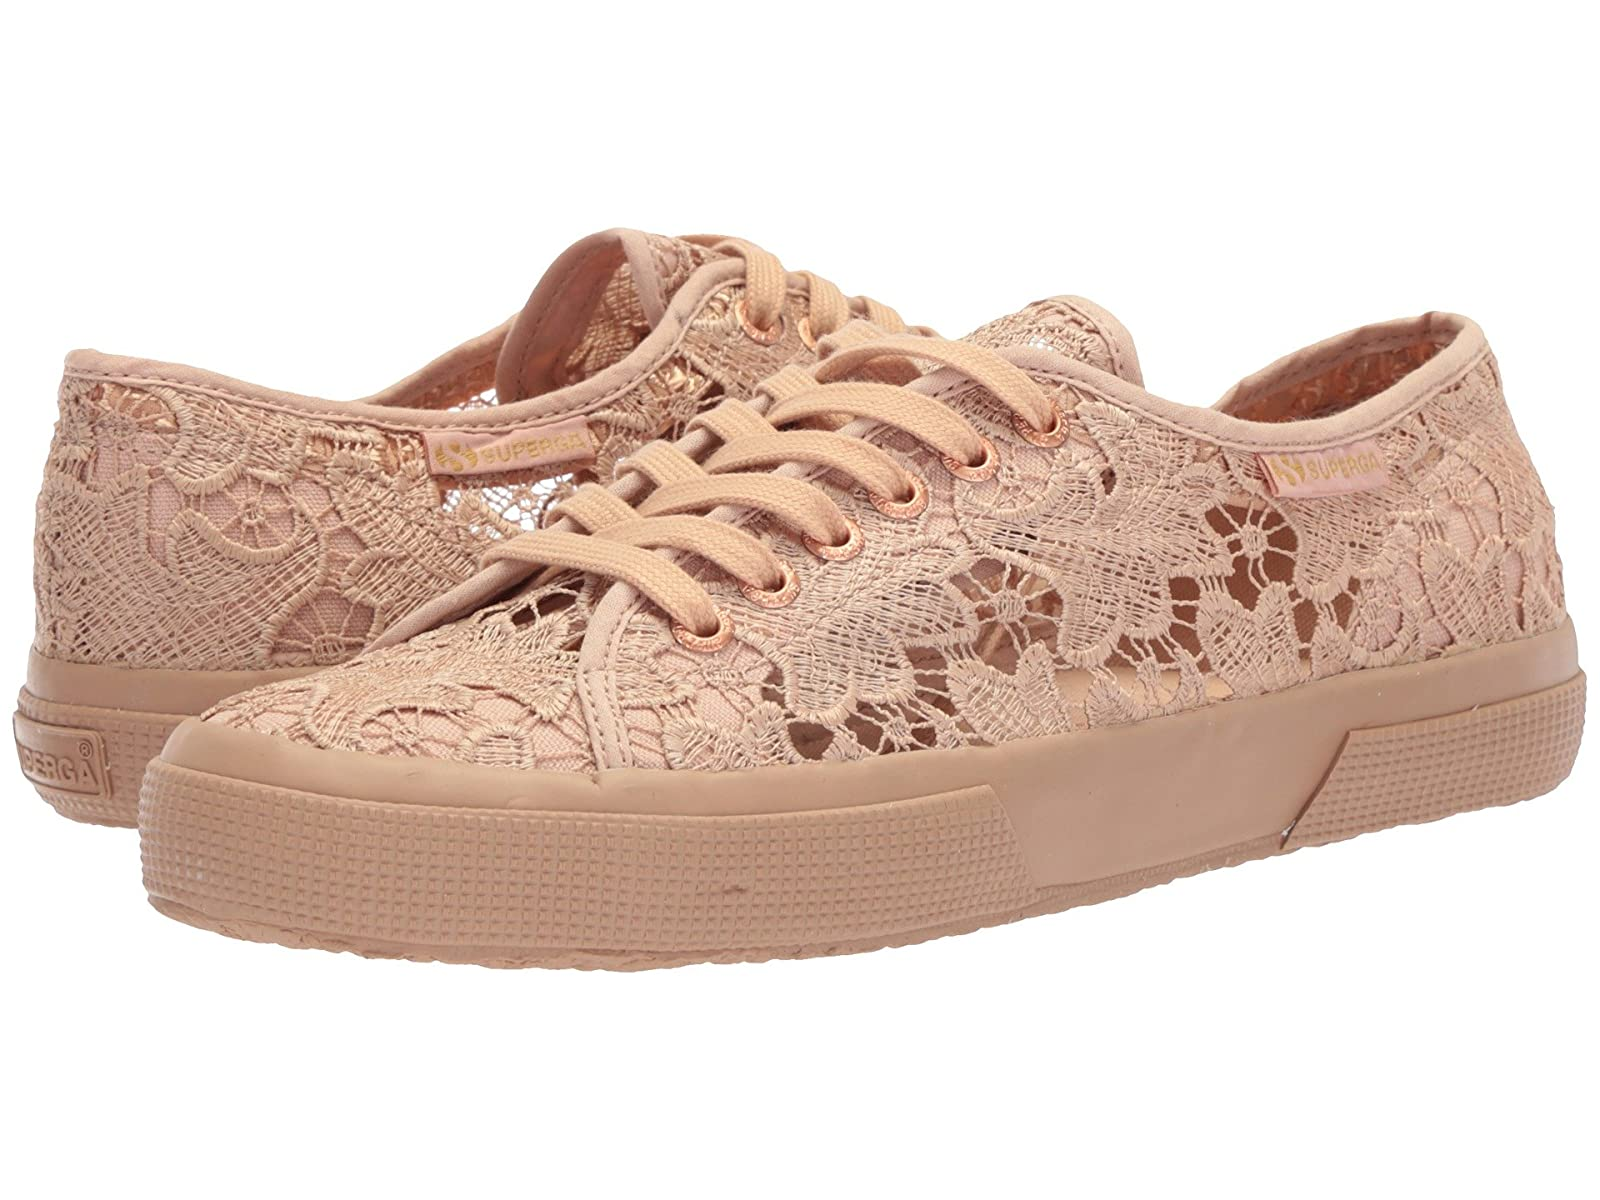 Superga 2750 Lace SneakerCheap and distinctive eye-catching shoes